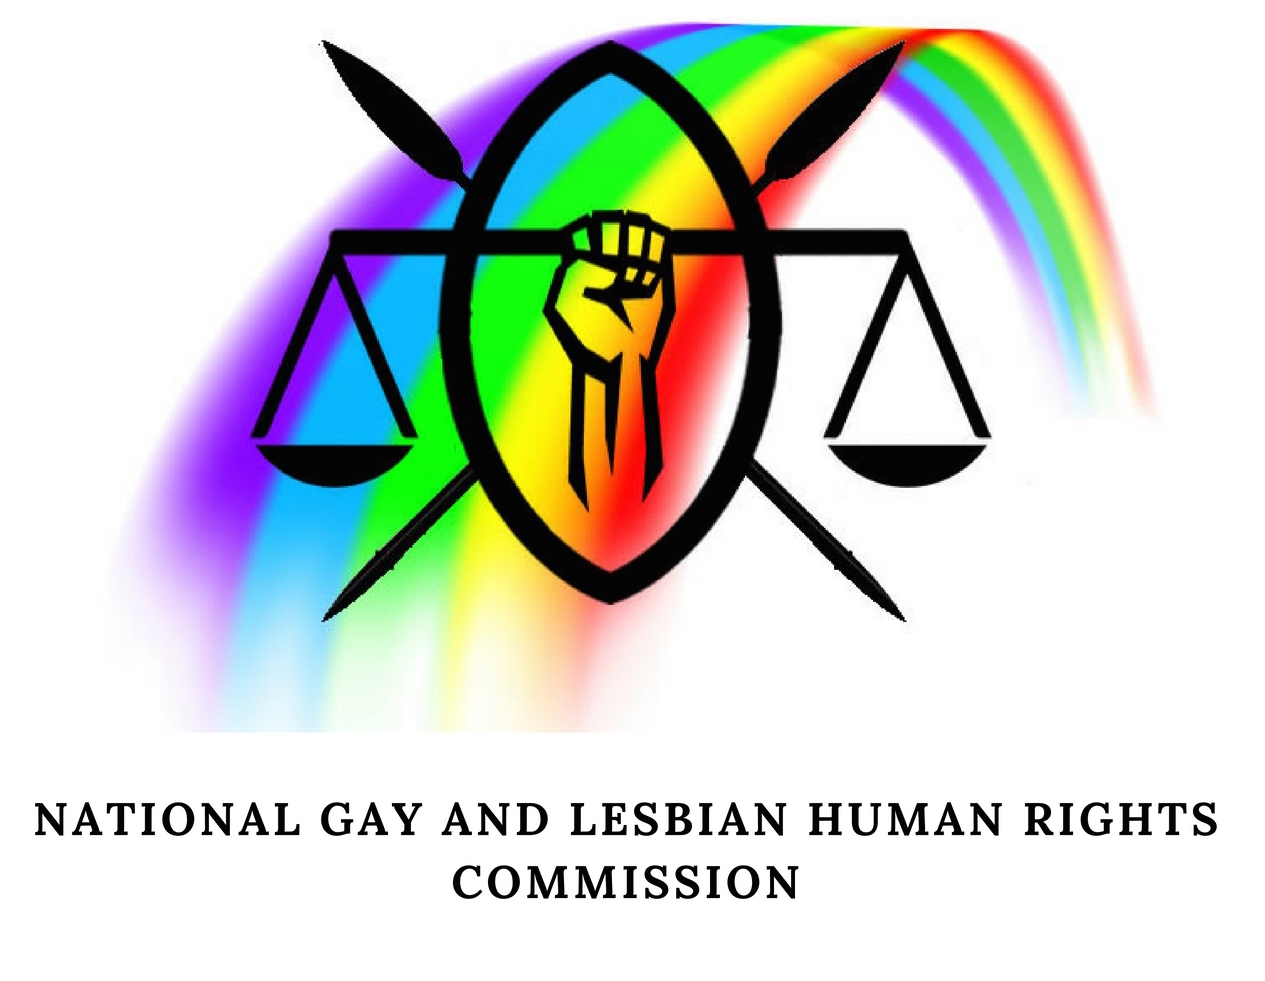 Logo of the National Gay and Lesbian Human Rights Commission of Kenya